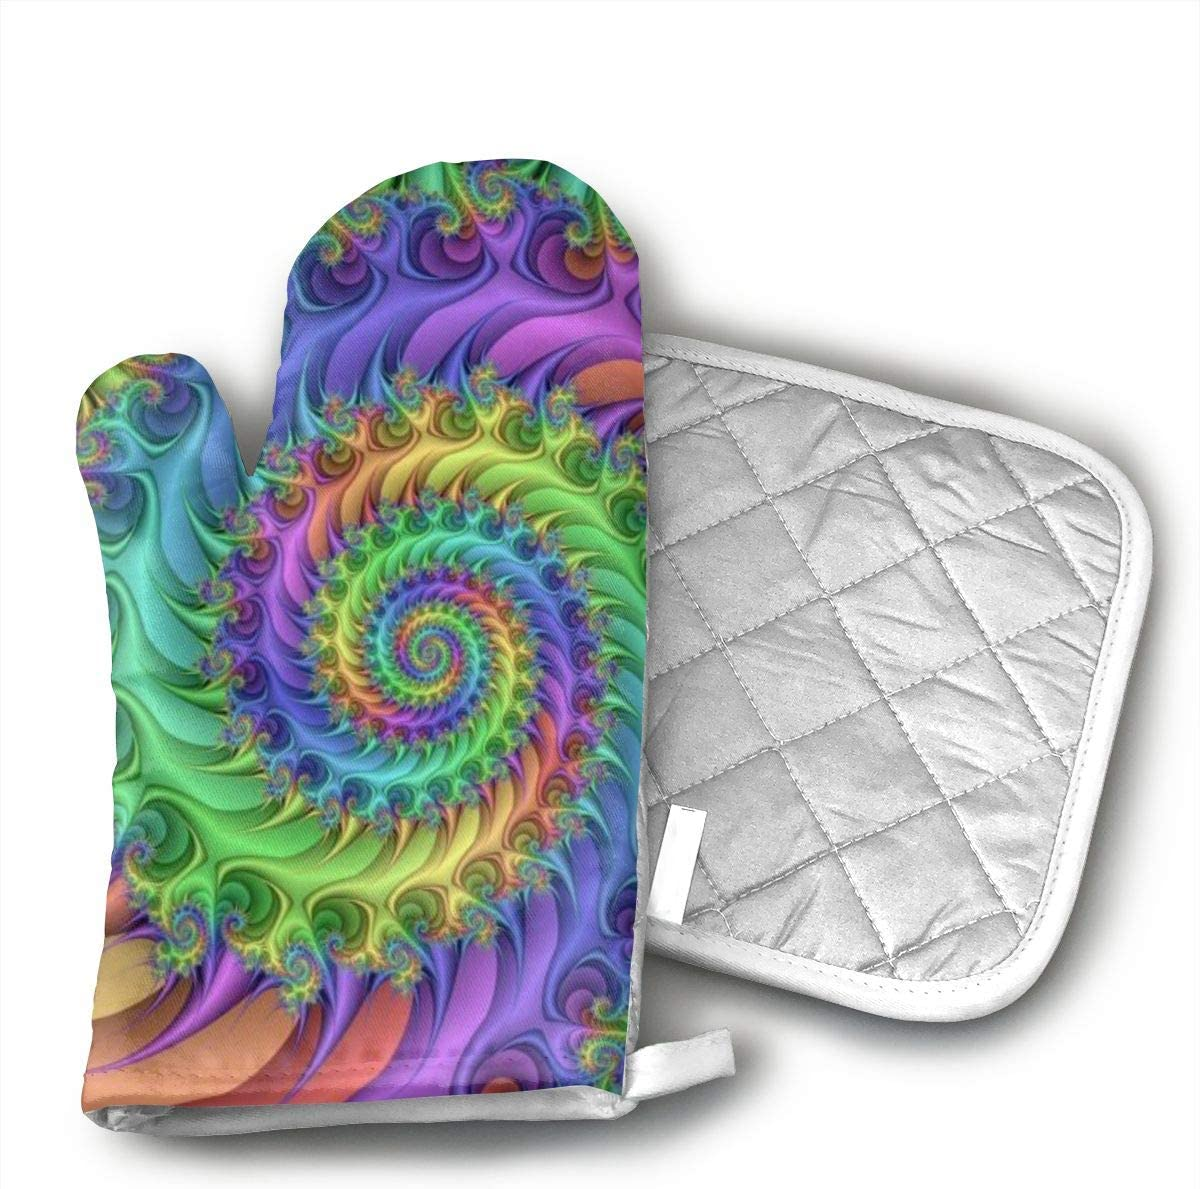 Wiqo9 Colorful Art Style Tie Dye Oven Mitts and Pot Holders Kitchen Mitten Cooking Gloves,Cooking, Baking, BBQ.